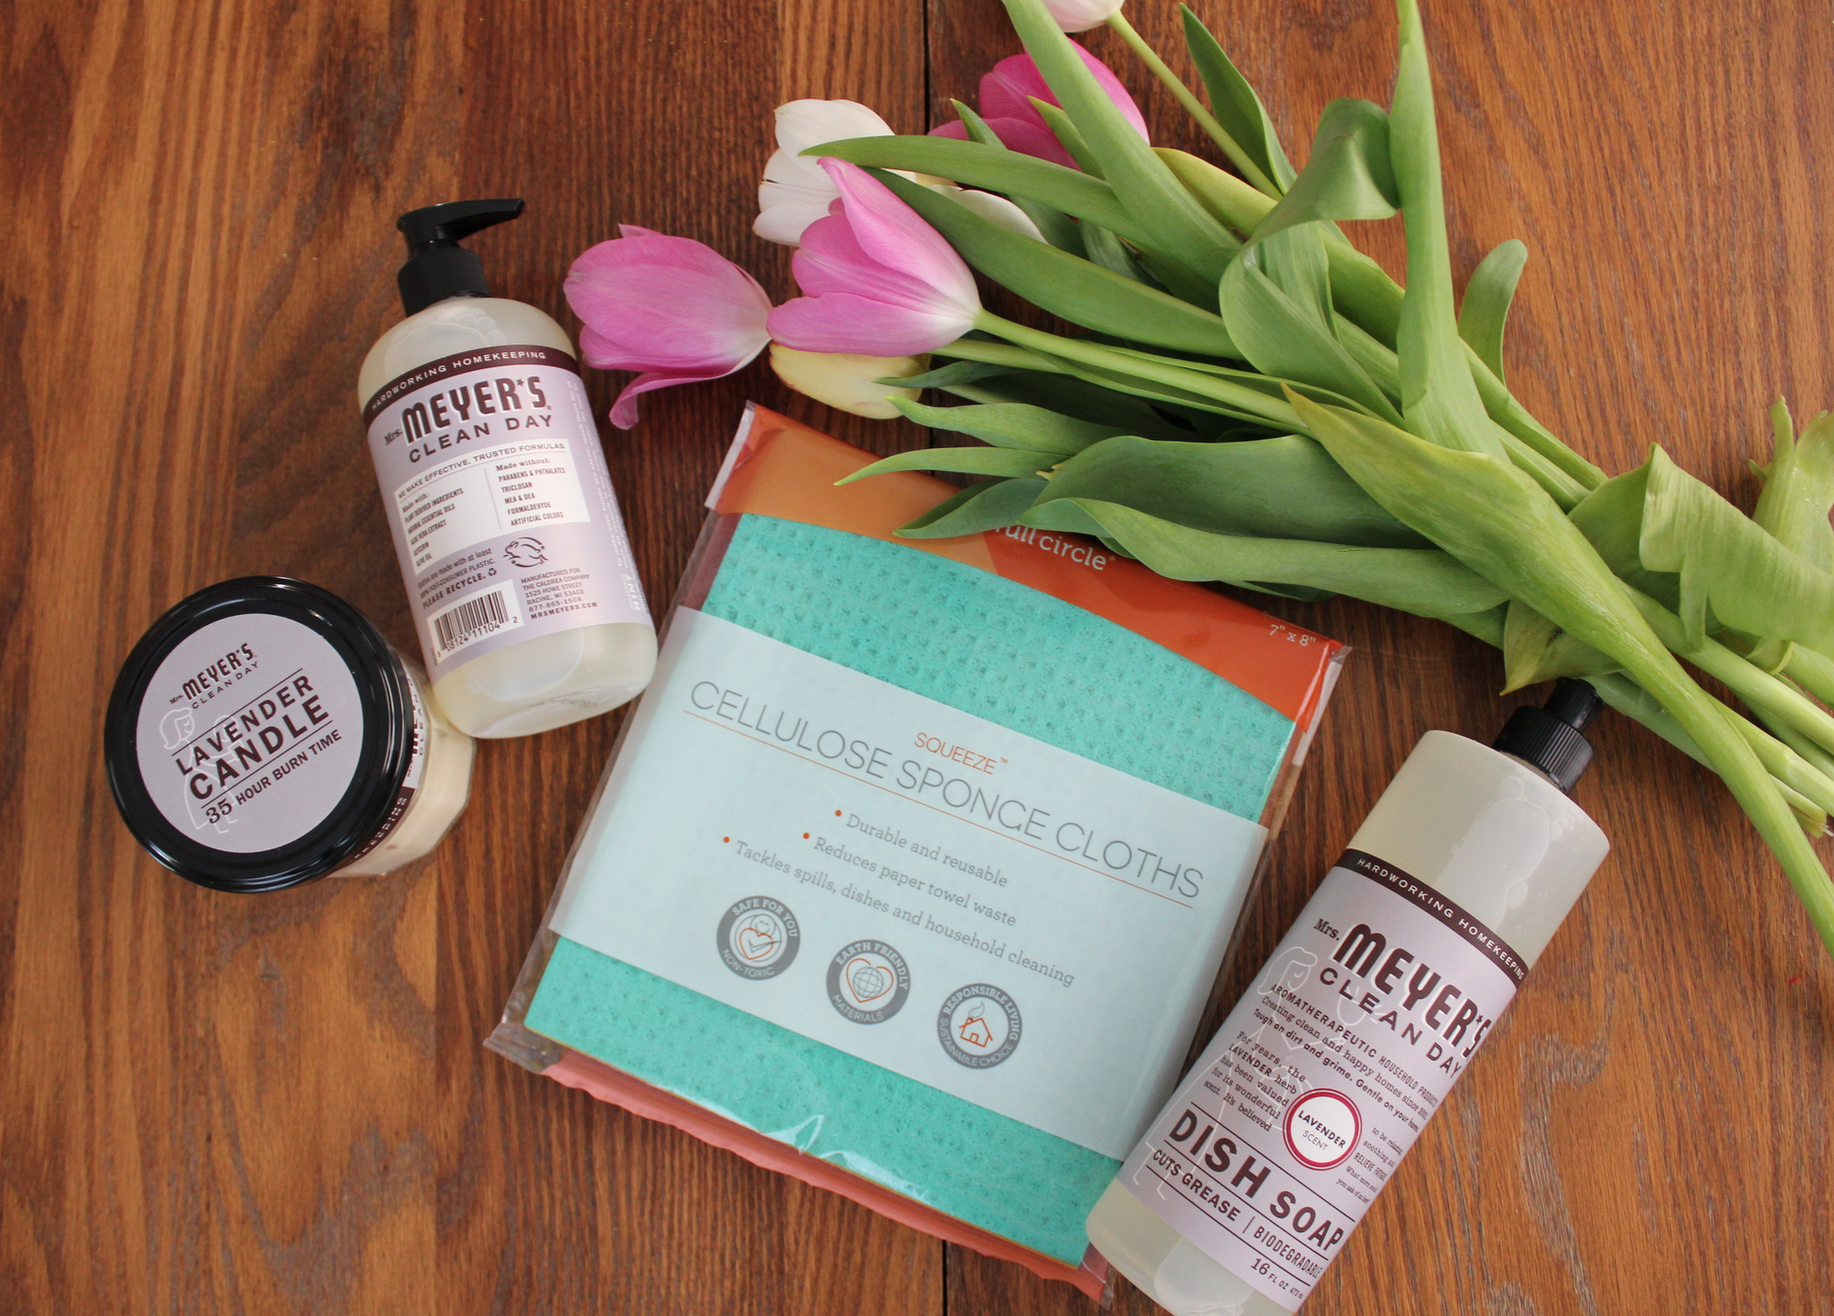 Get this amazing Mrs. Meyer's Essentials Kit for FREE!